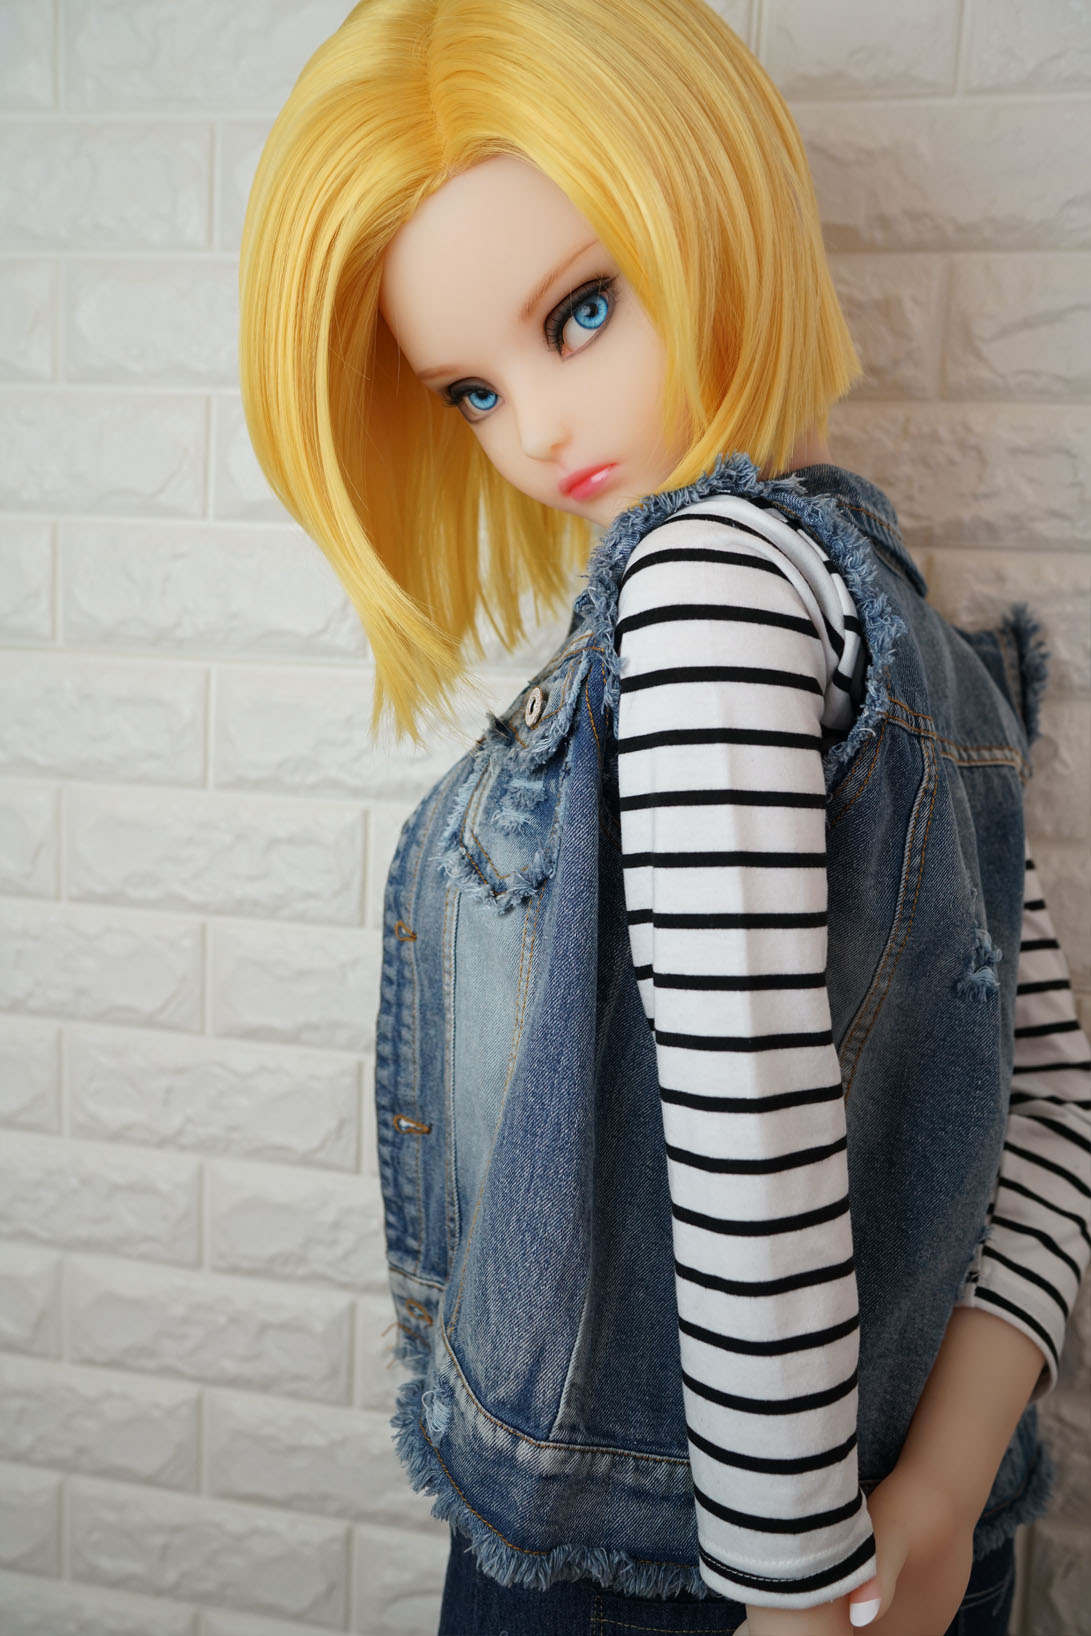 Android real doll lazuli